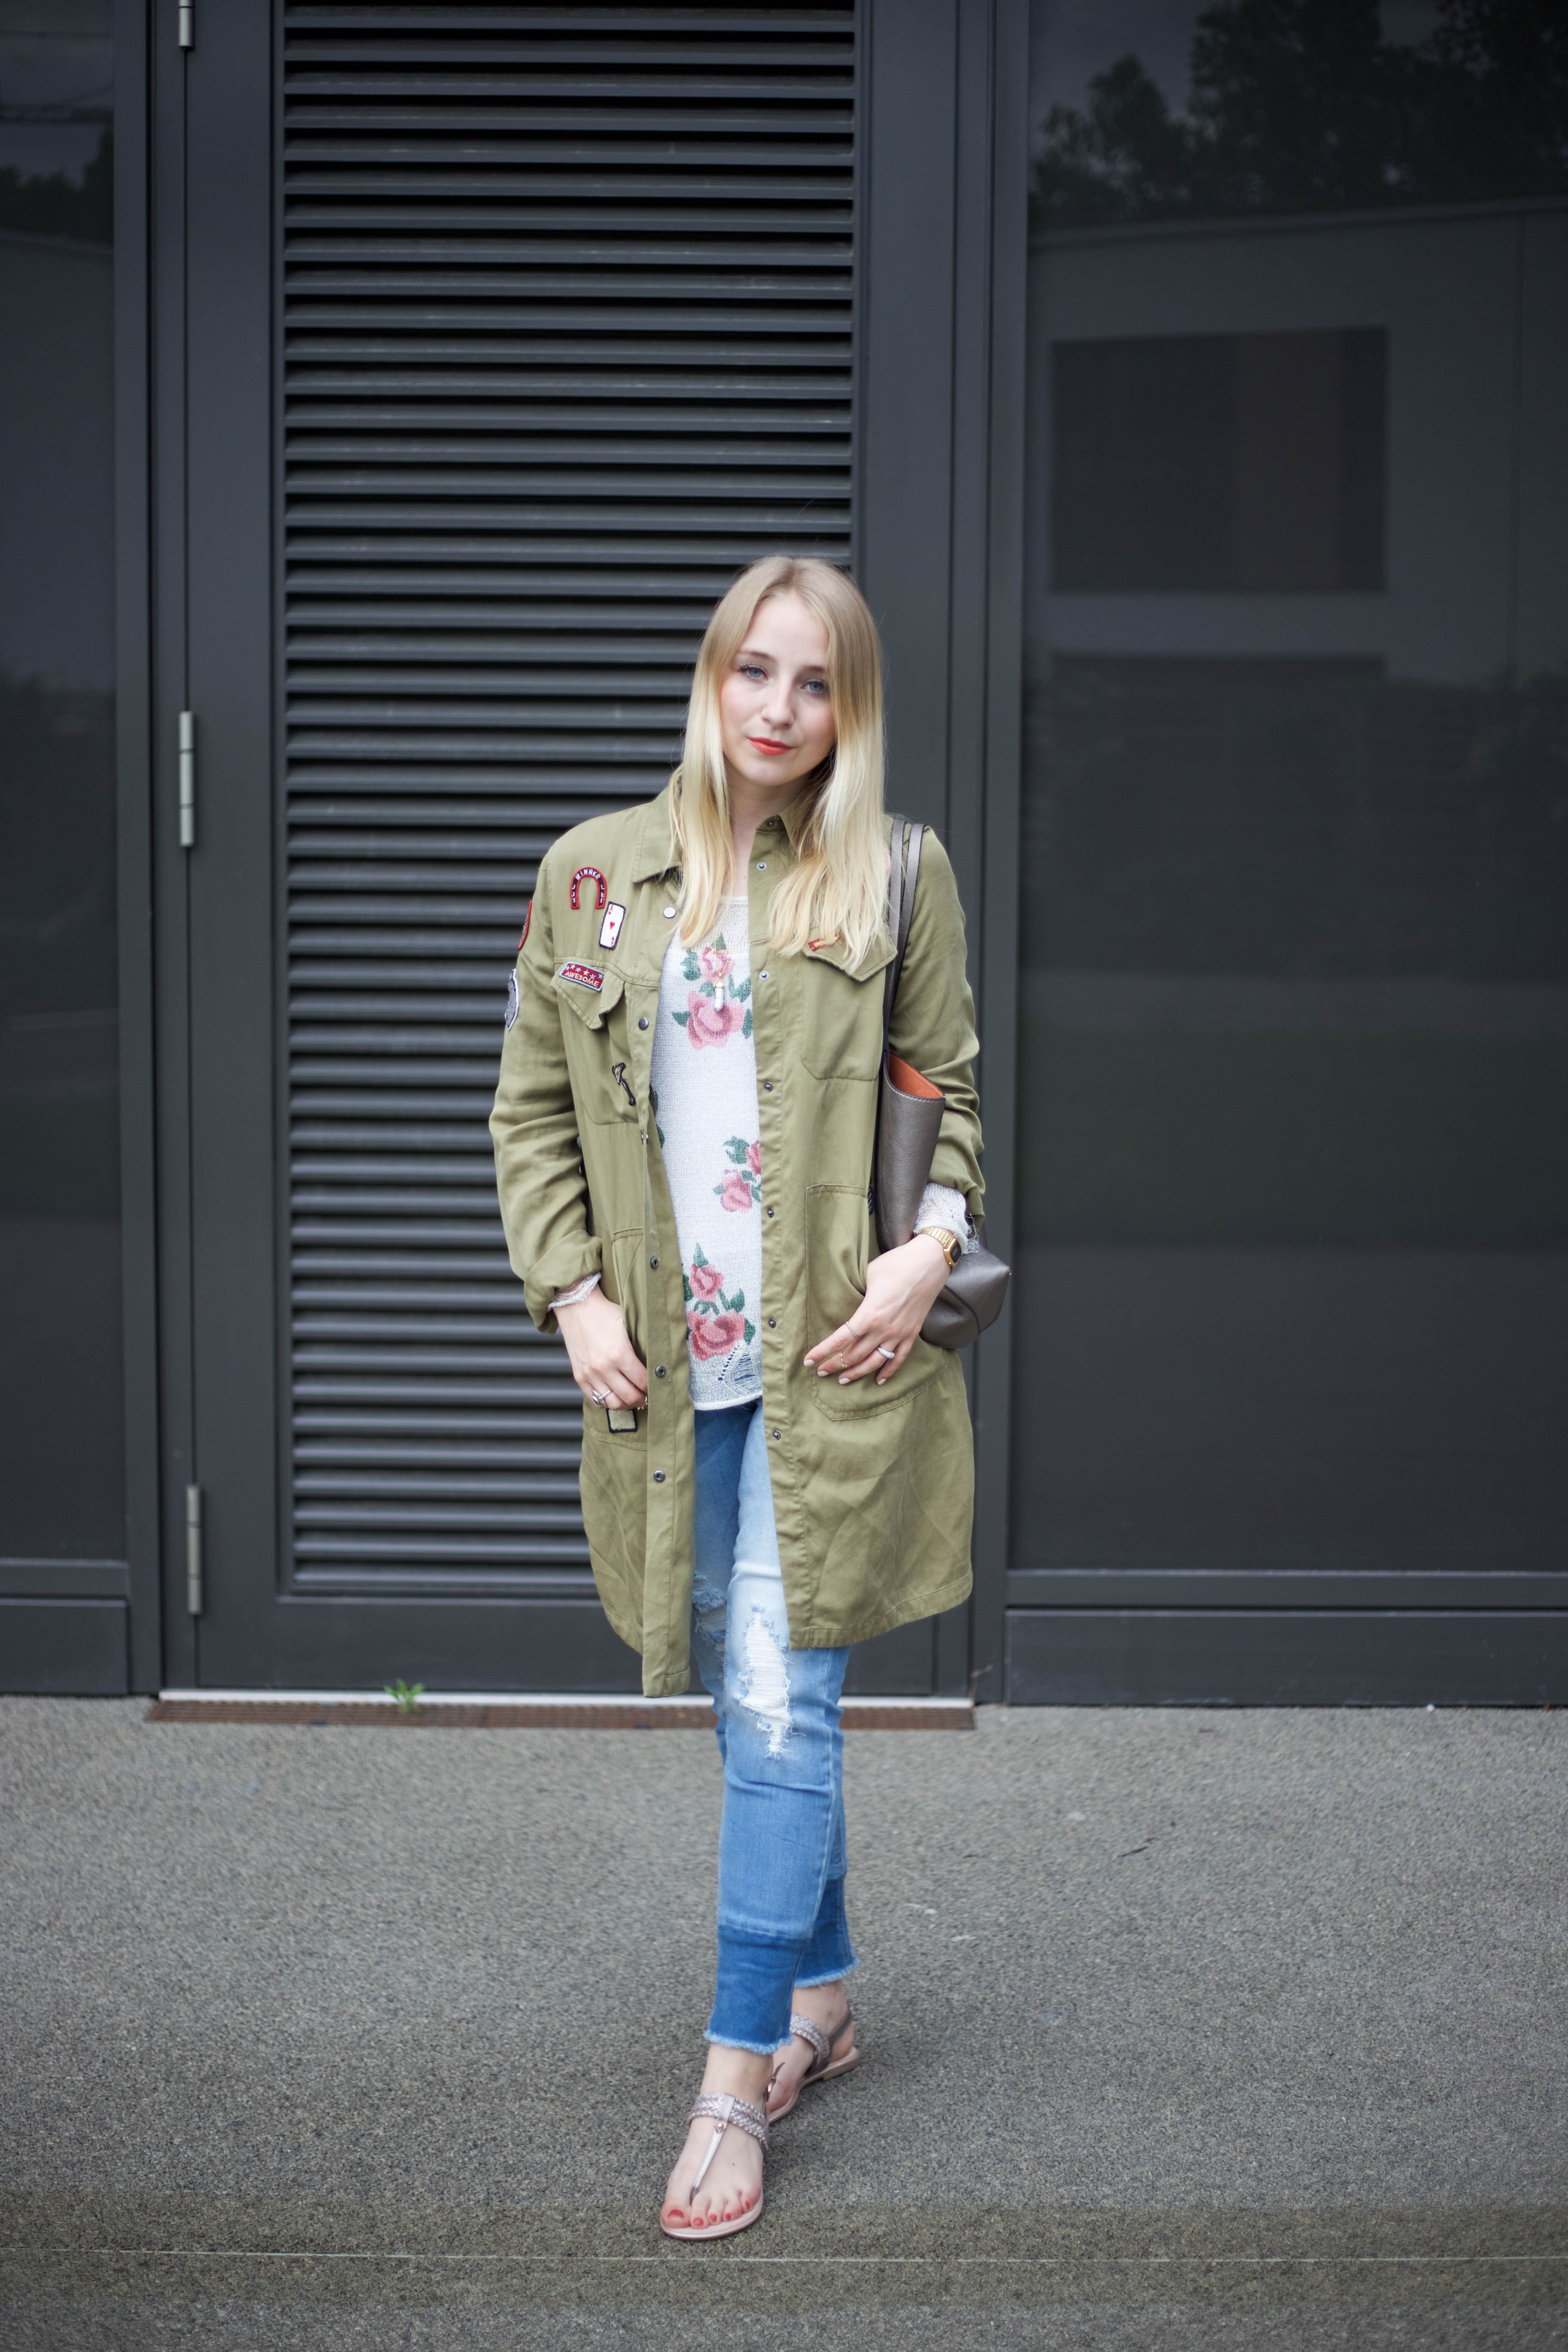 roland-schuhe-trendpage-outfit-jacke-patches-ripped-jeans_9377